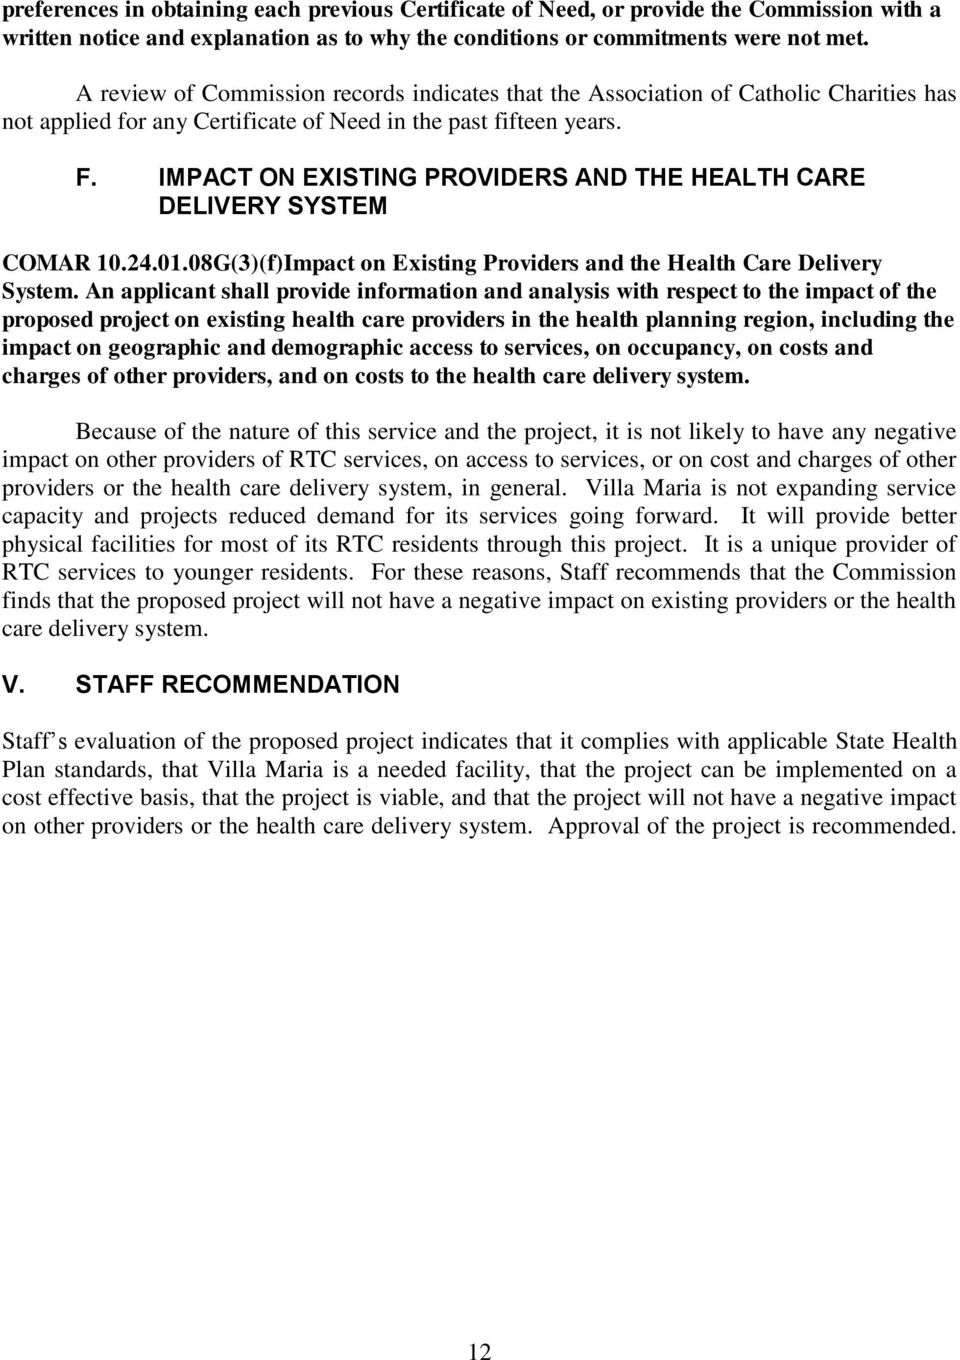 IMPACT ON EXISTING PROVIDERS AND THE HEALTH CARE DELIVERY SYSTEM COMAR 10.24.01.08G(3)(f)Impact on Existing Providers and the Health Care Delivery System.